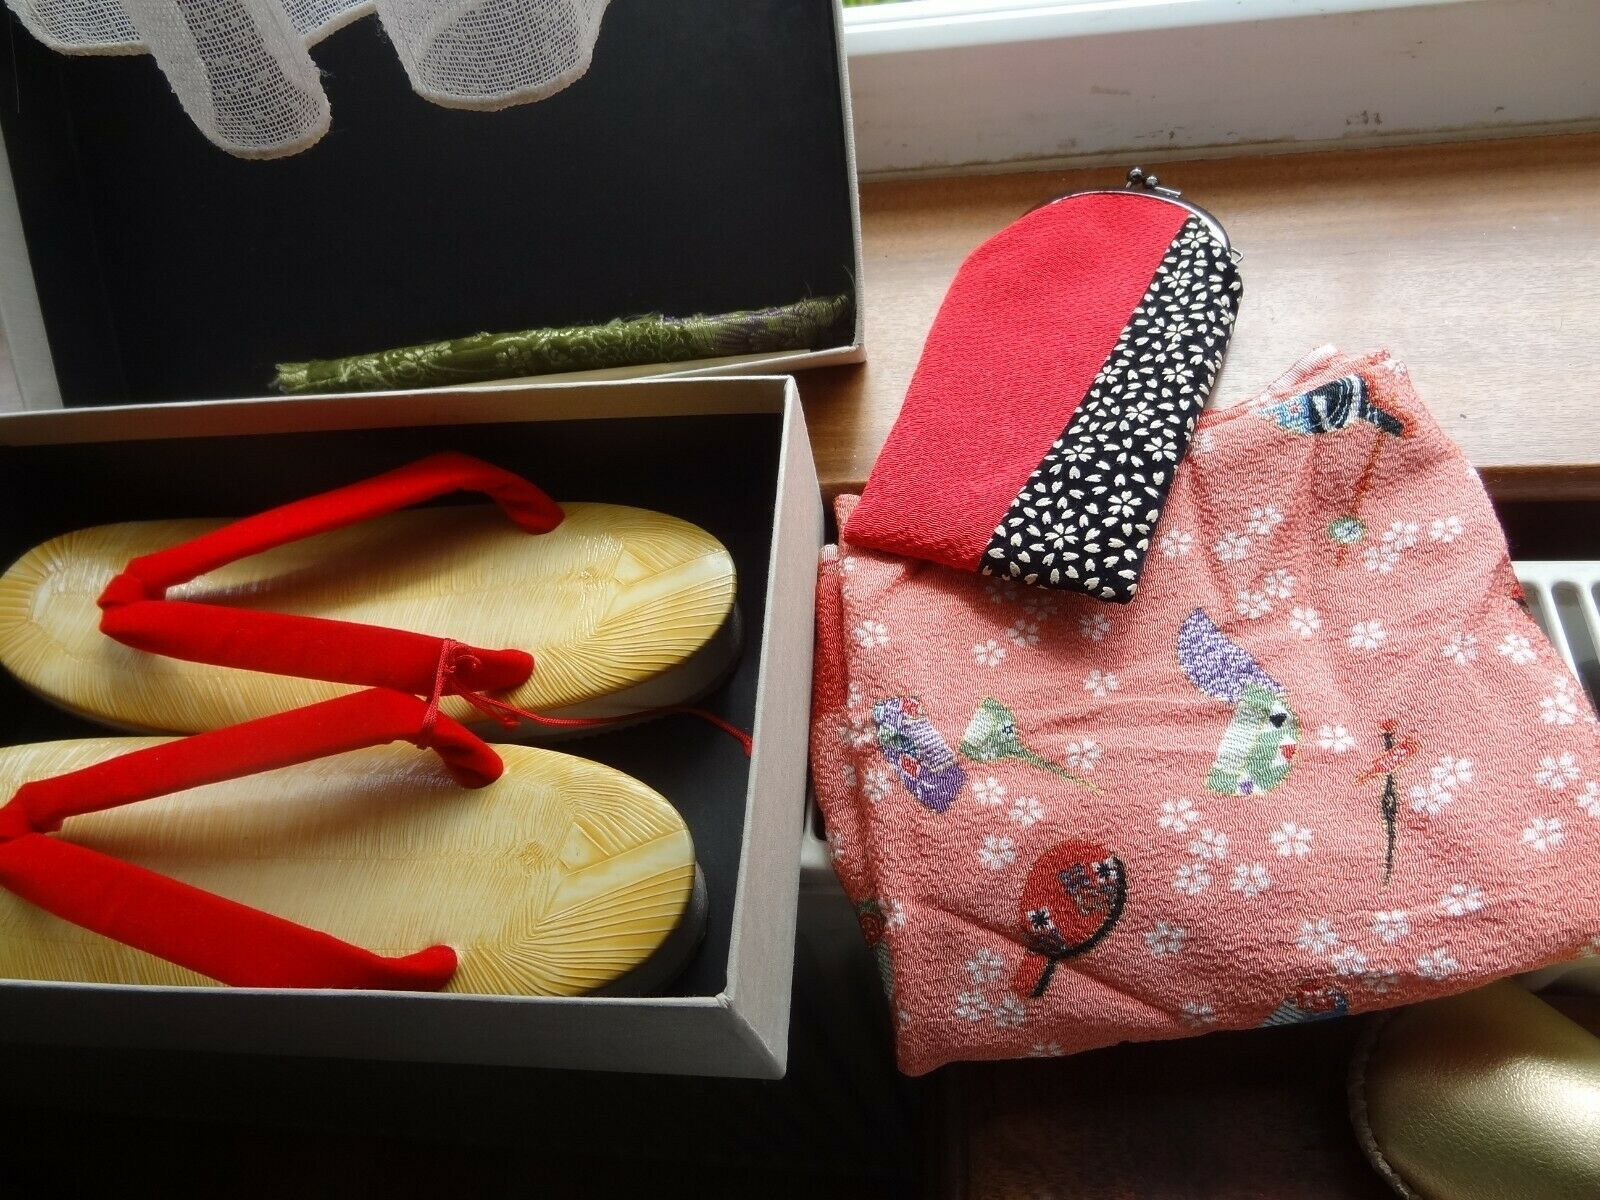 JAPANESE SHOES SCARF CHOPSTICKS & GLASSES CASE BOXED NEW SHOES ATTACH RED VELVET